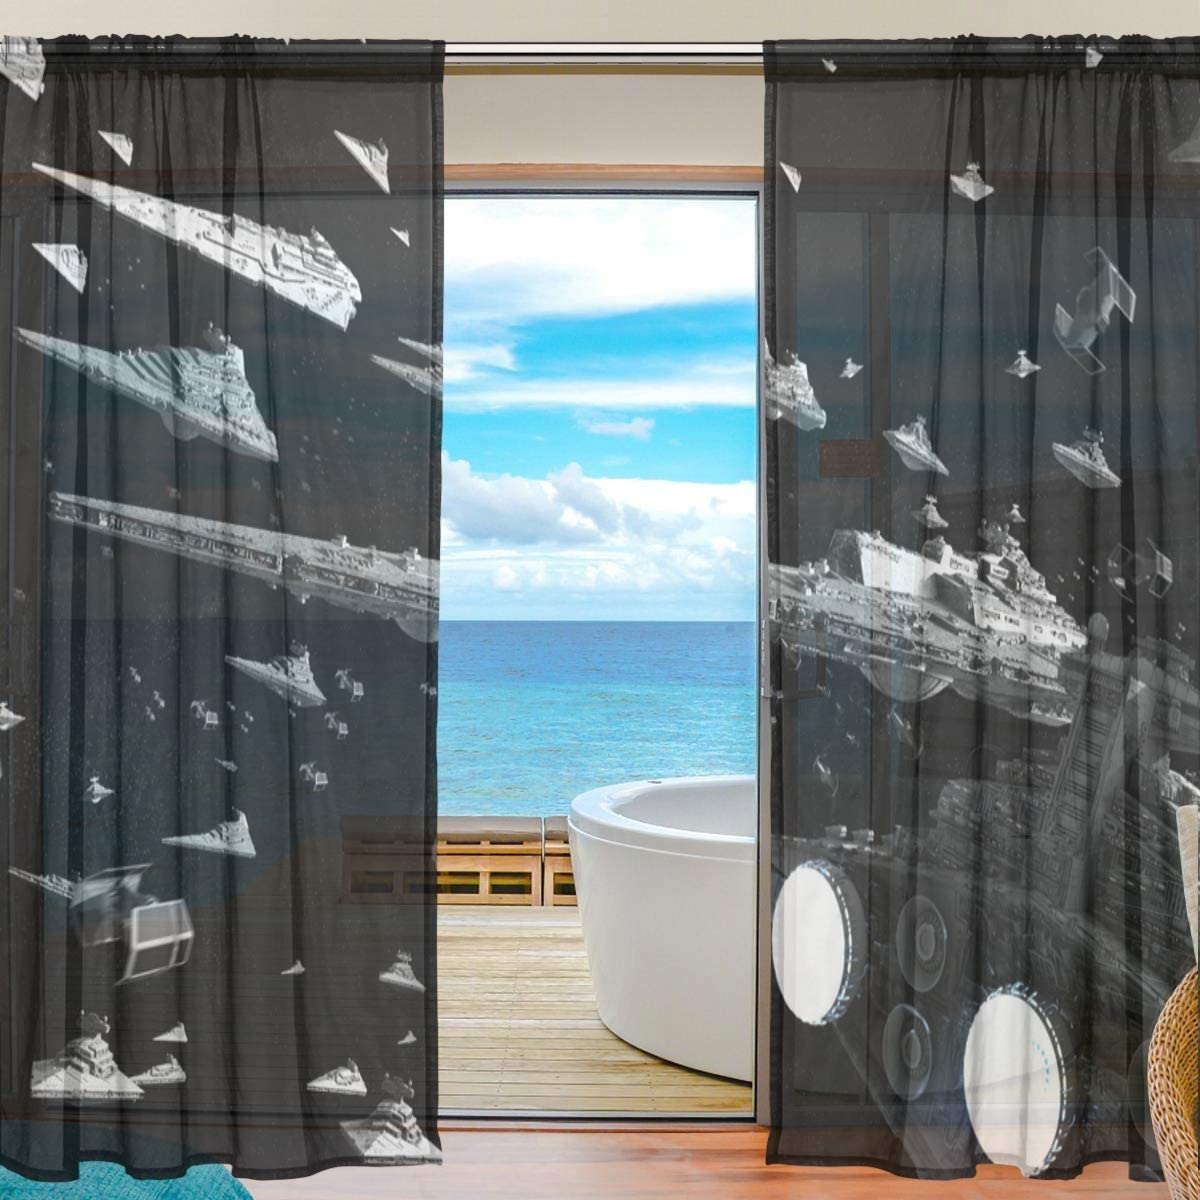 Meroy Fowler Star Wars Tulle Curtain Sheer Curtains Drapery Window Treatment Curtain 2 Panels Each 55 x 84 Inch for Living Room Voile Drapes Bedroom Kitchen Window